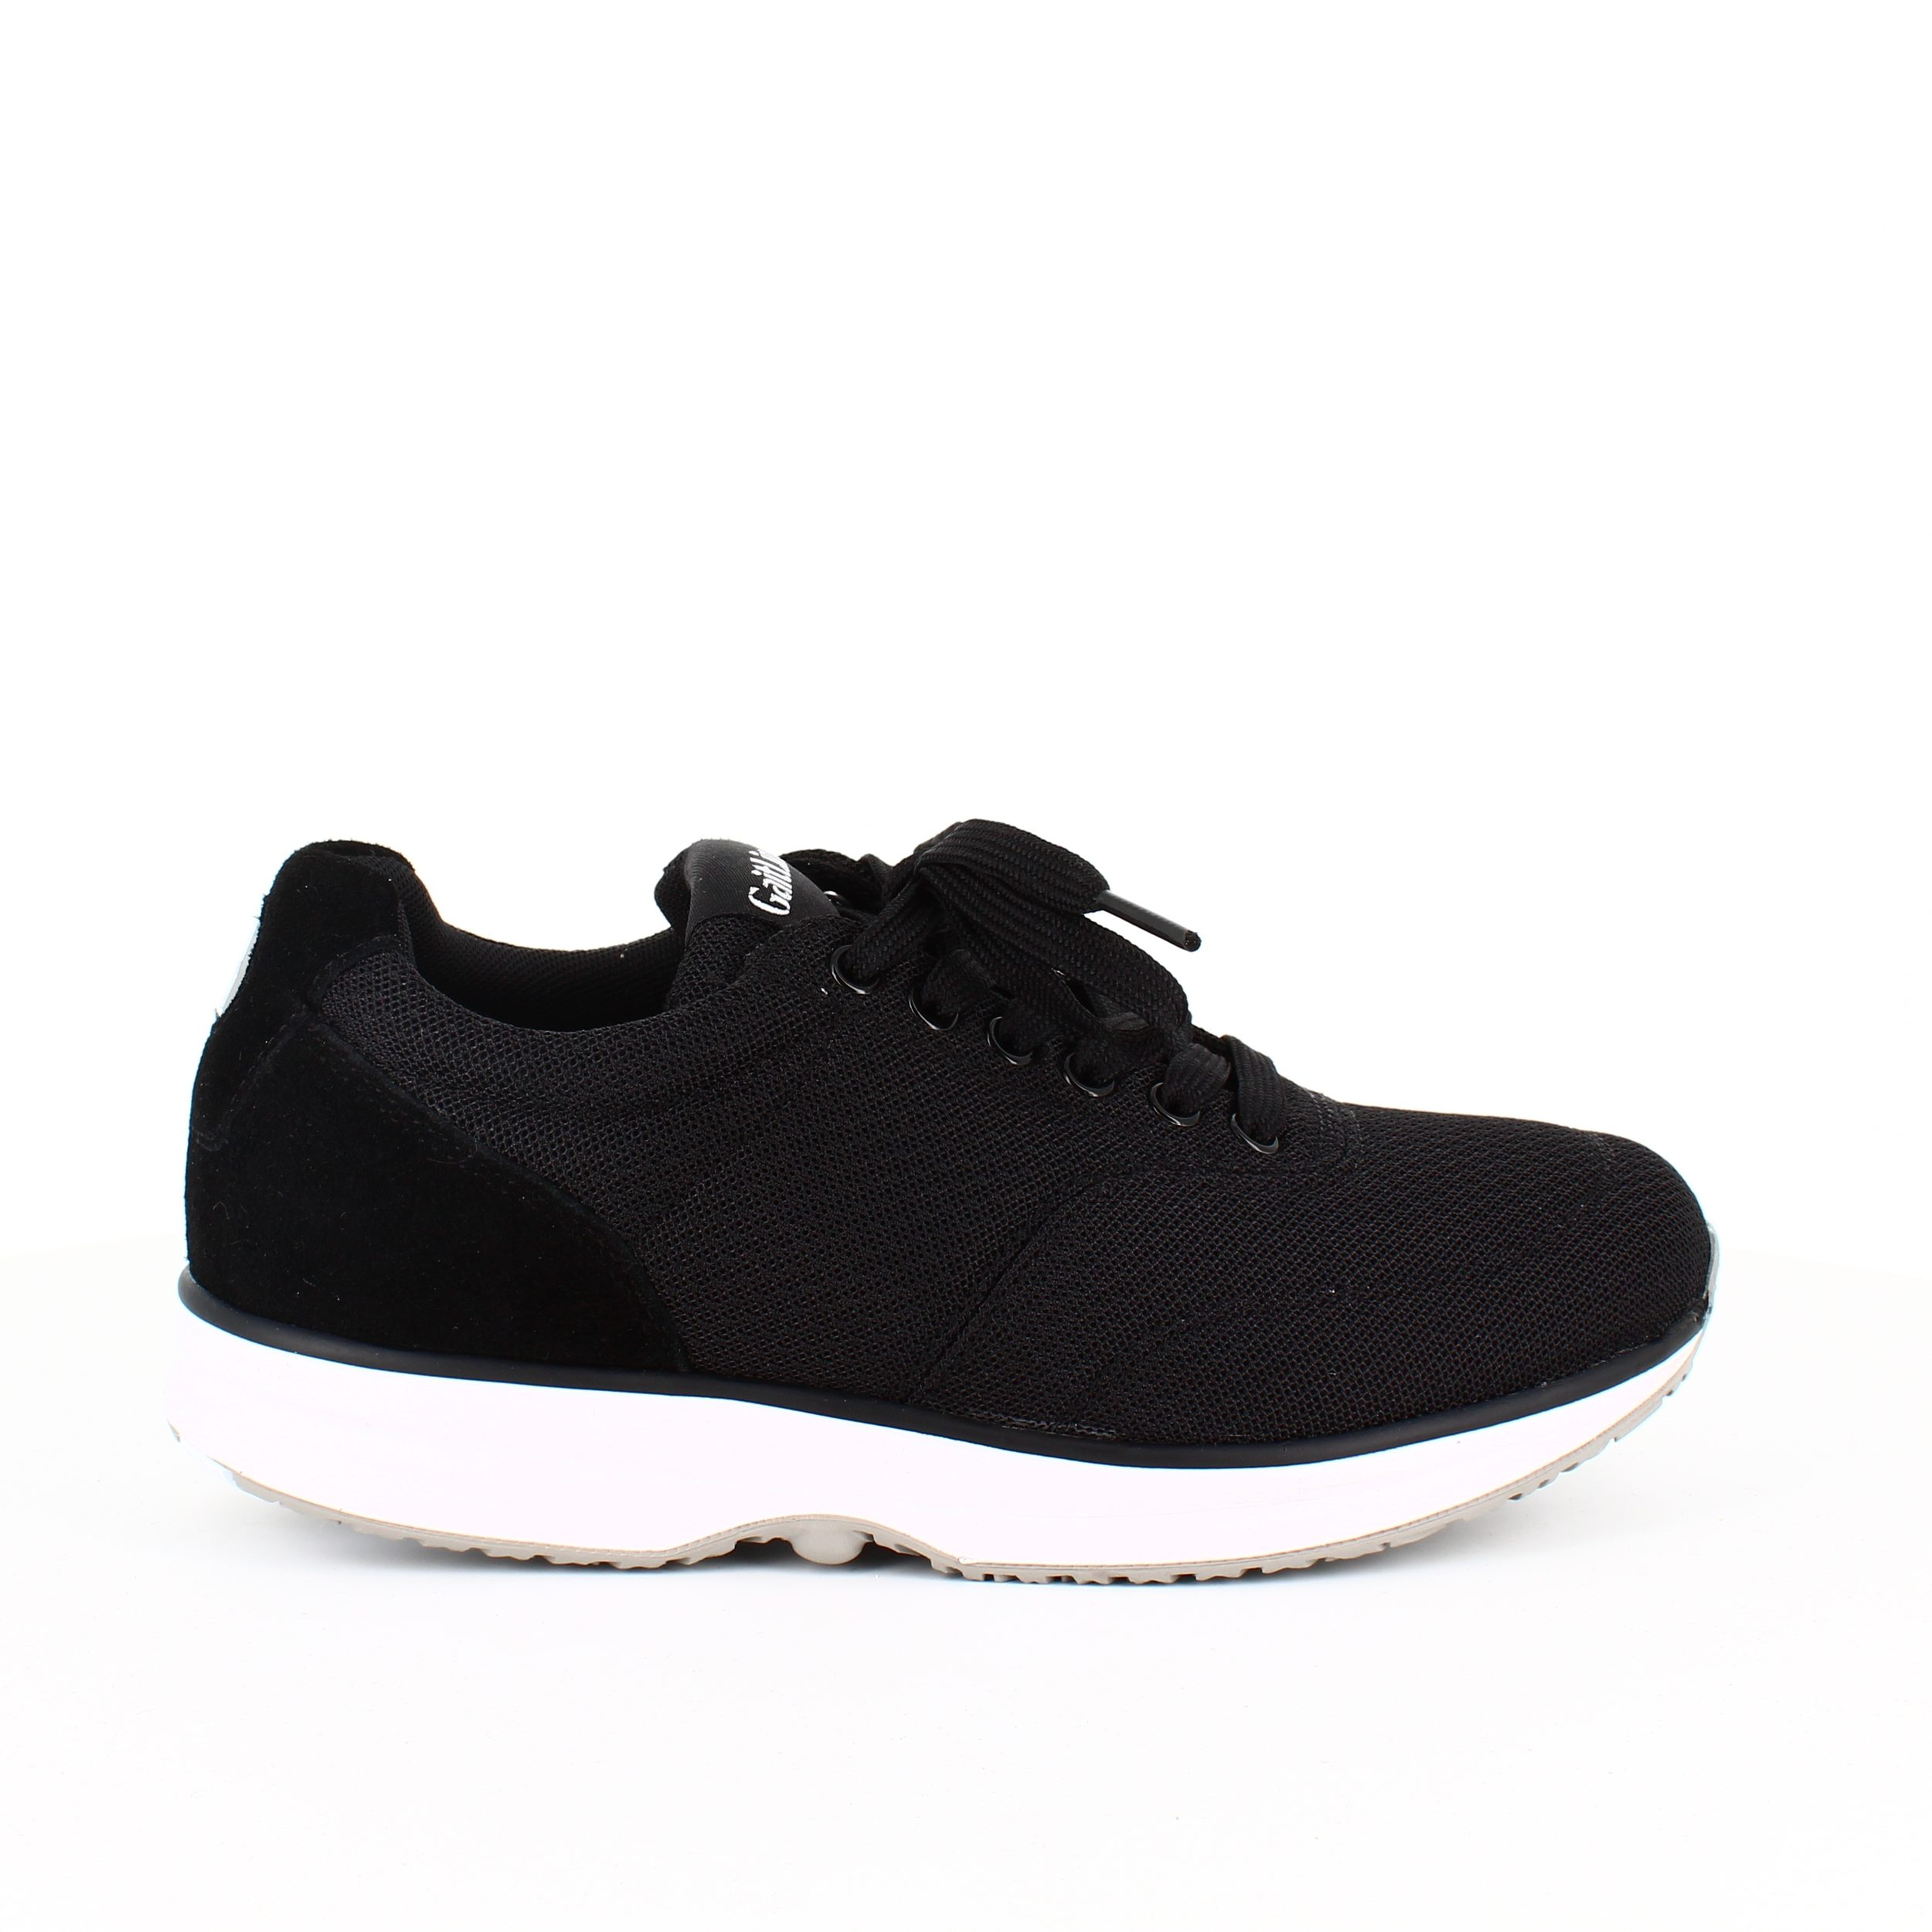 Image of   Flotte Sorte sneakers fra Gaitline - 36